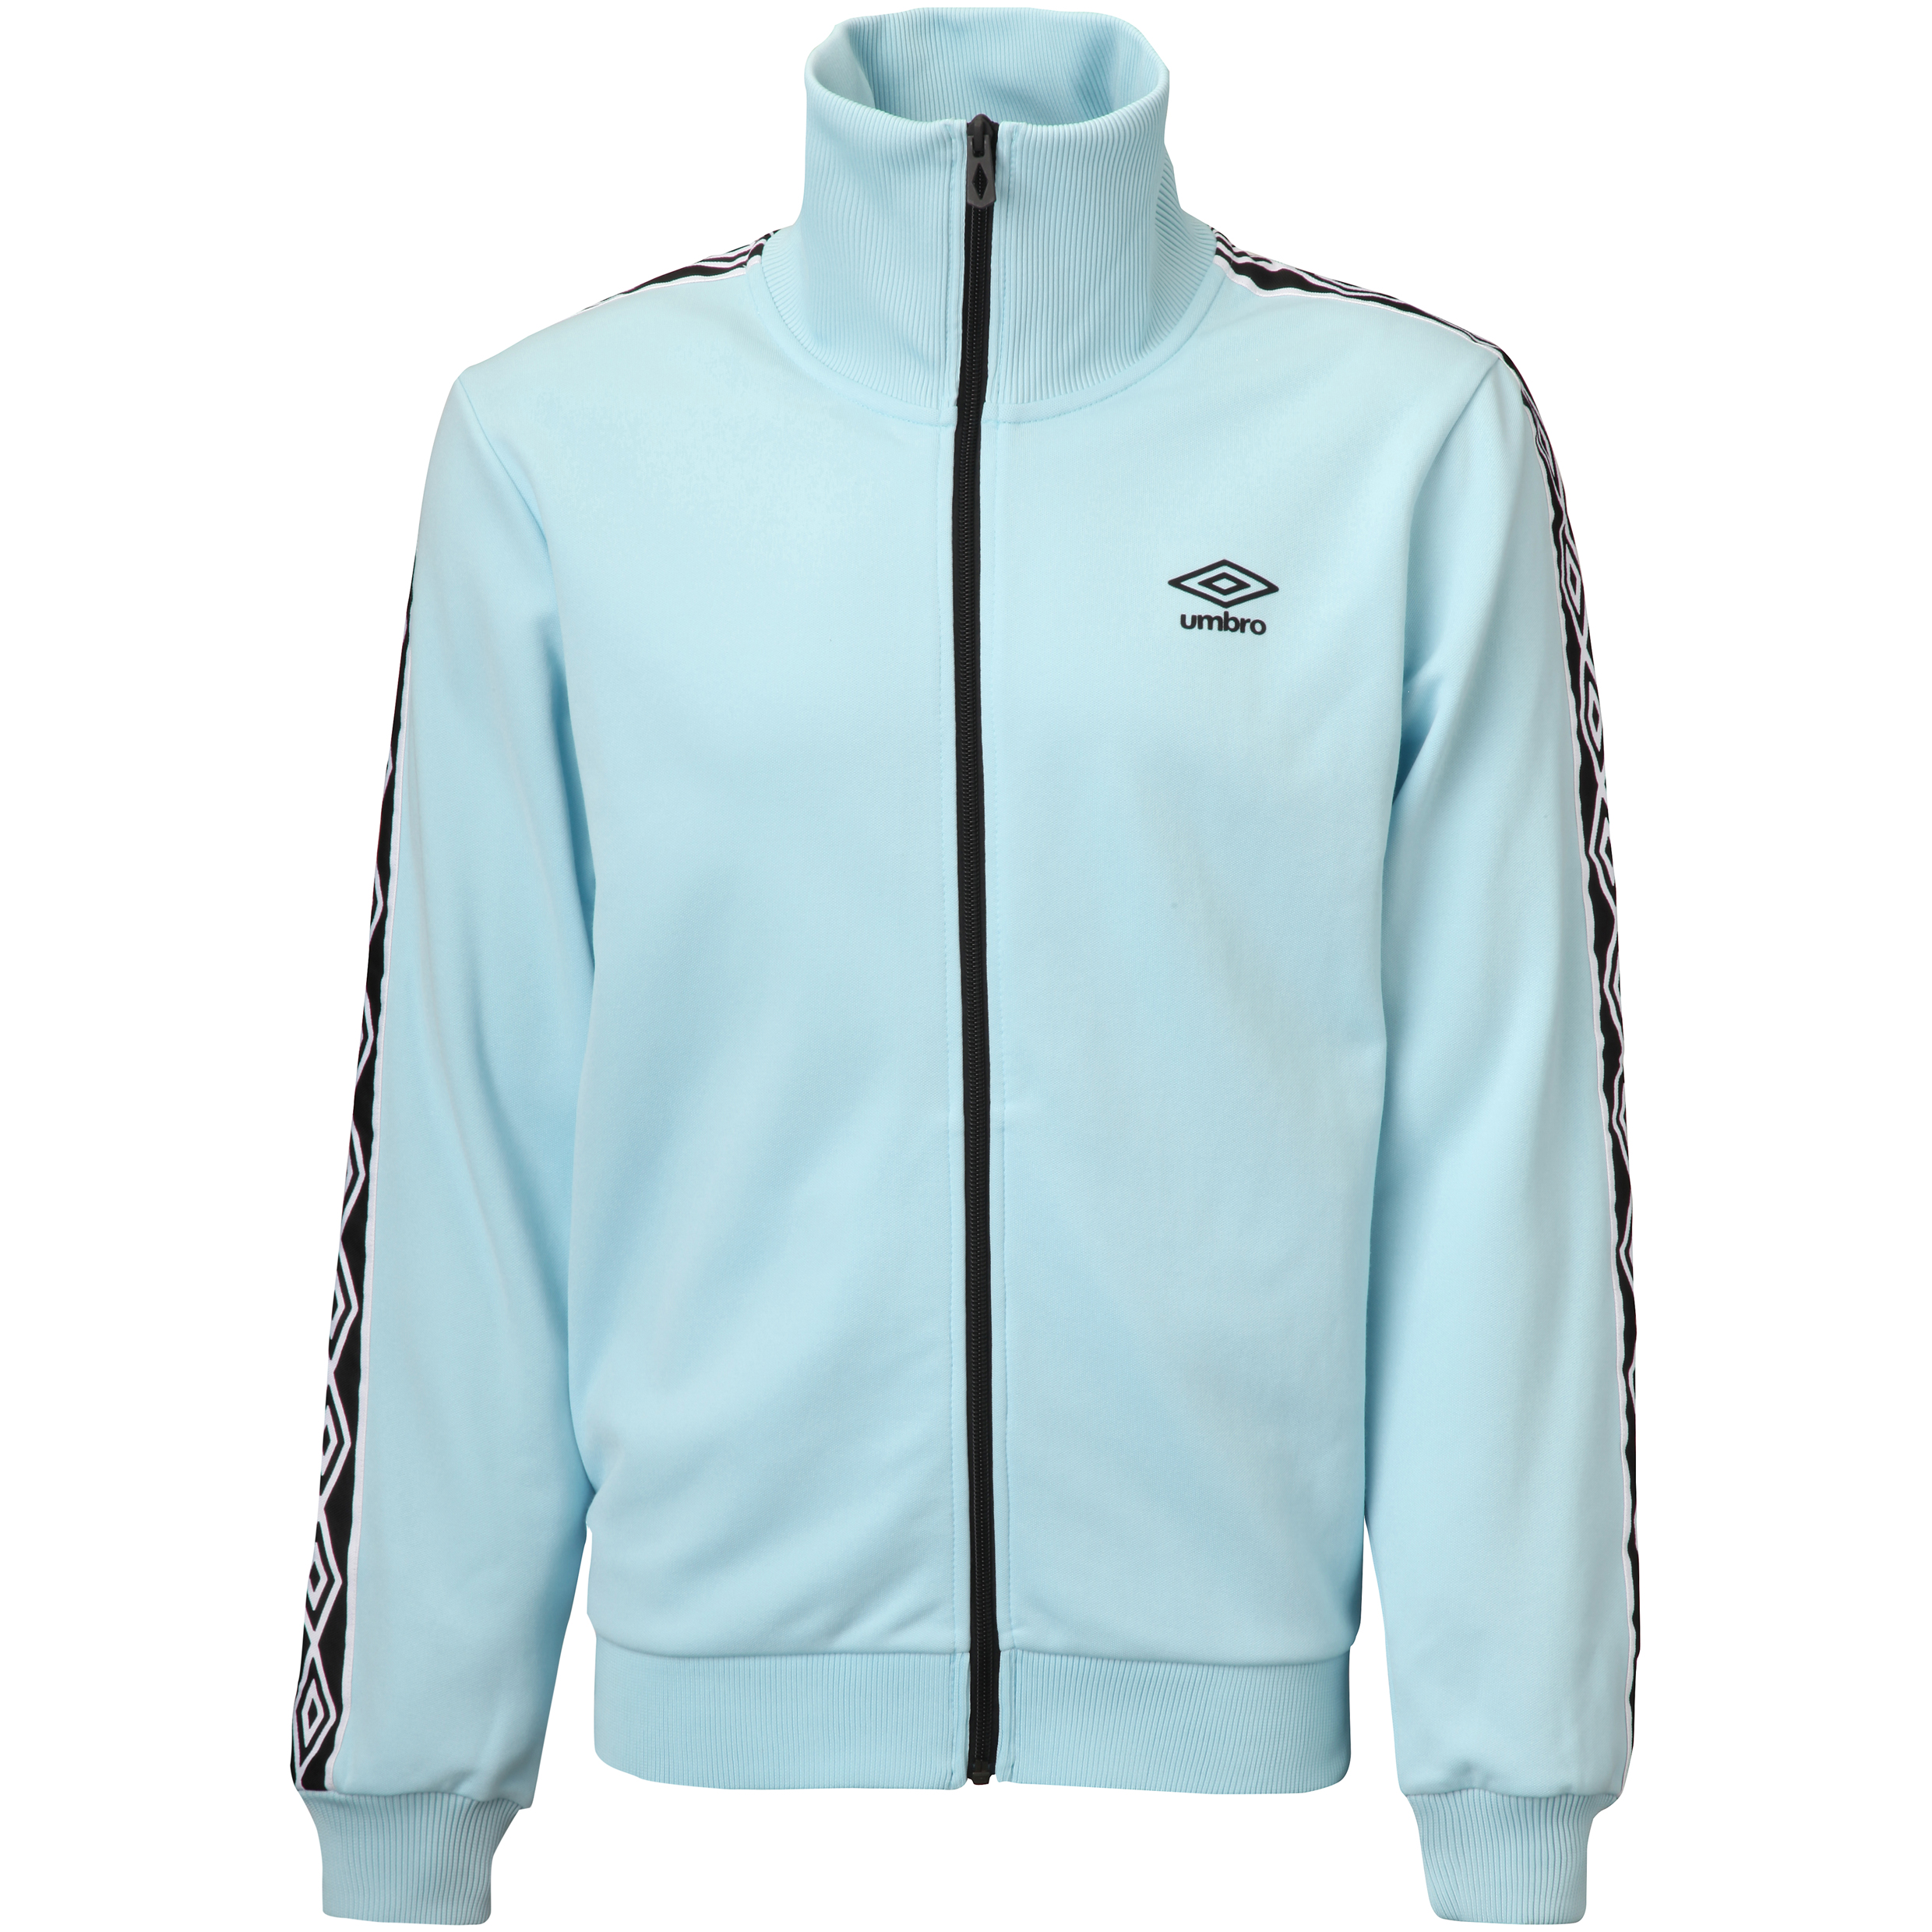 Umbro Diamond Track Jacket - Crystal Blue/Black